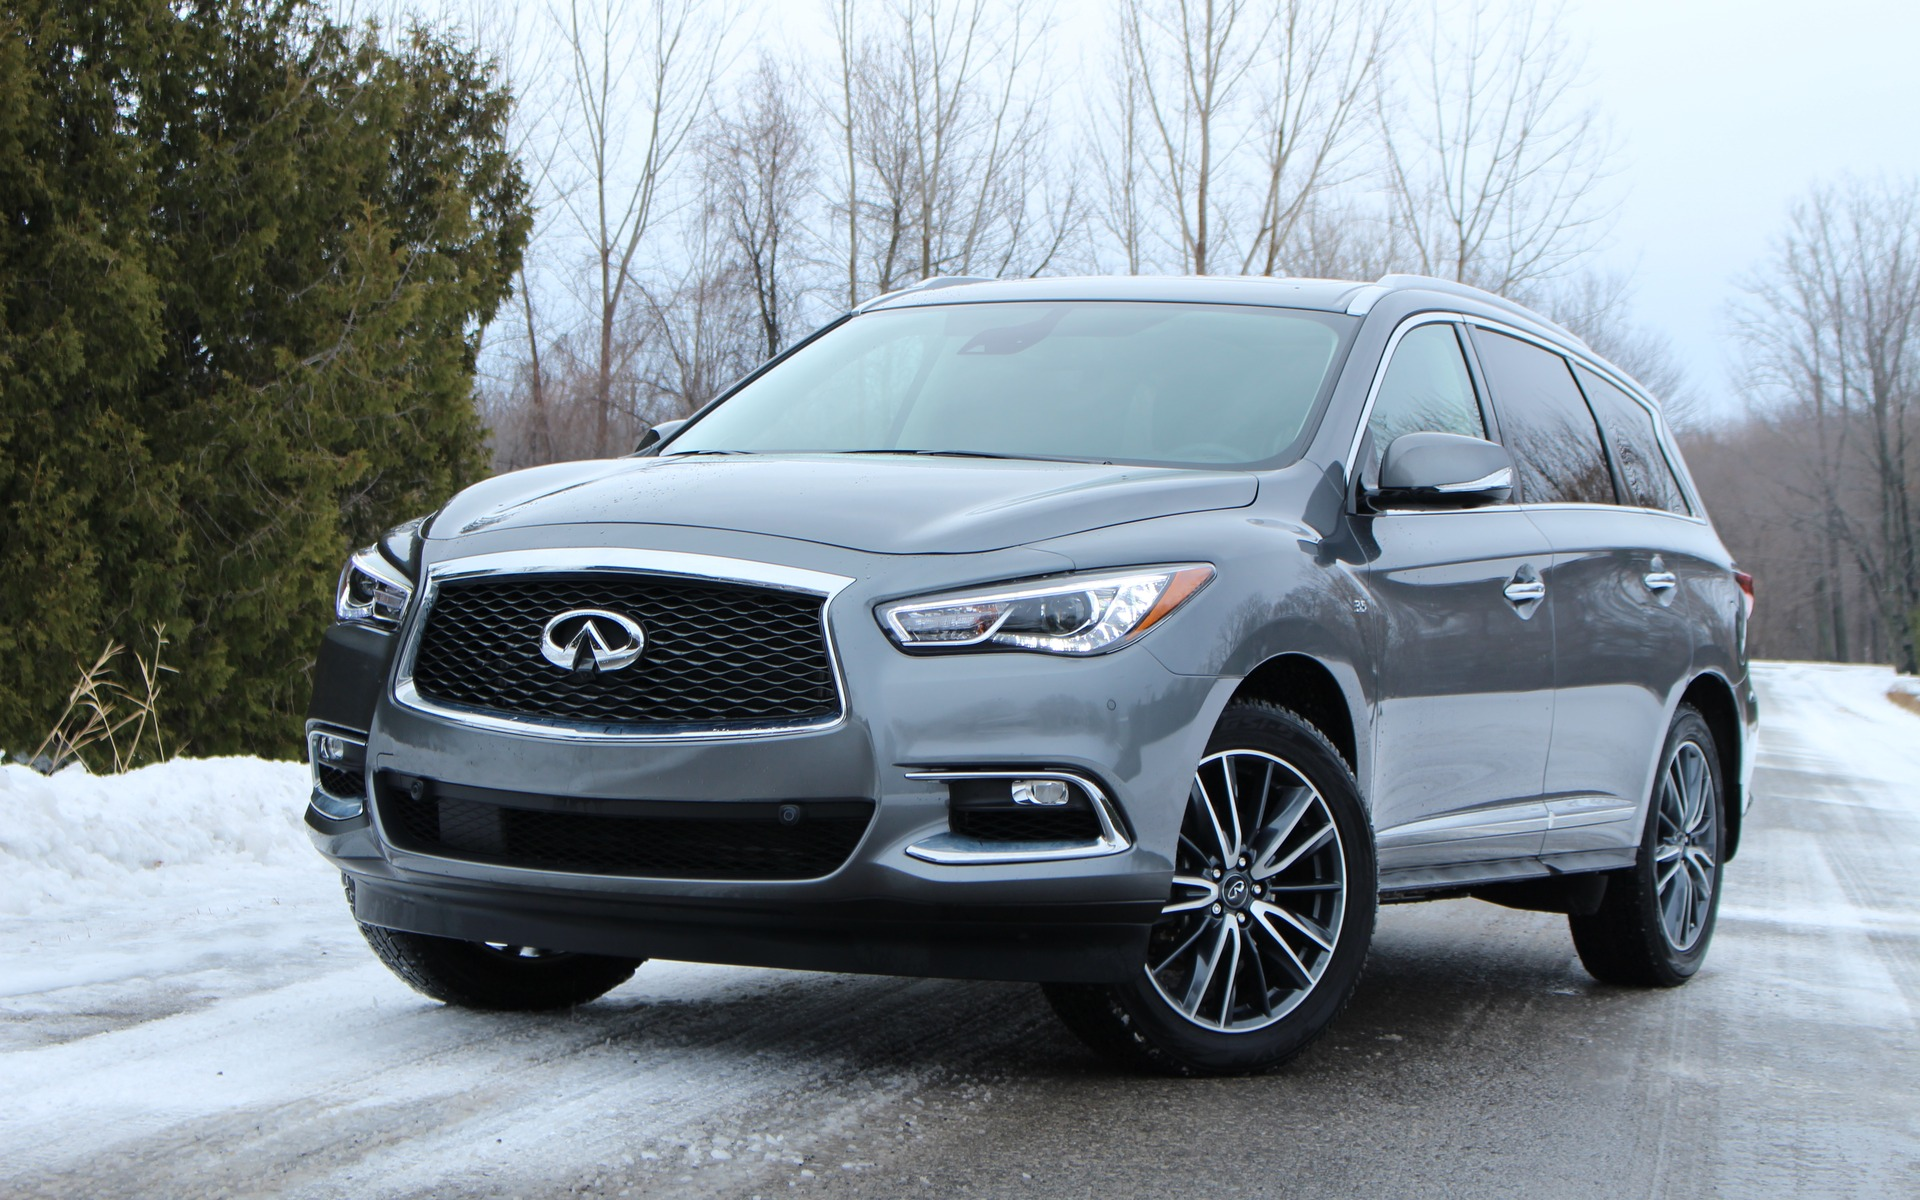 2019 Infiniti QX60: New Package, Design, Specs >> 2019 Infiniti Qx60 Versatility First The Car Guide